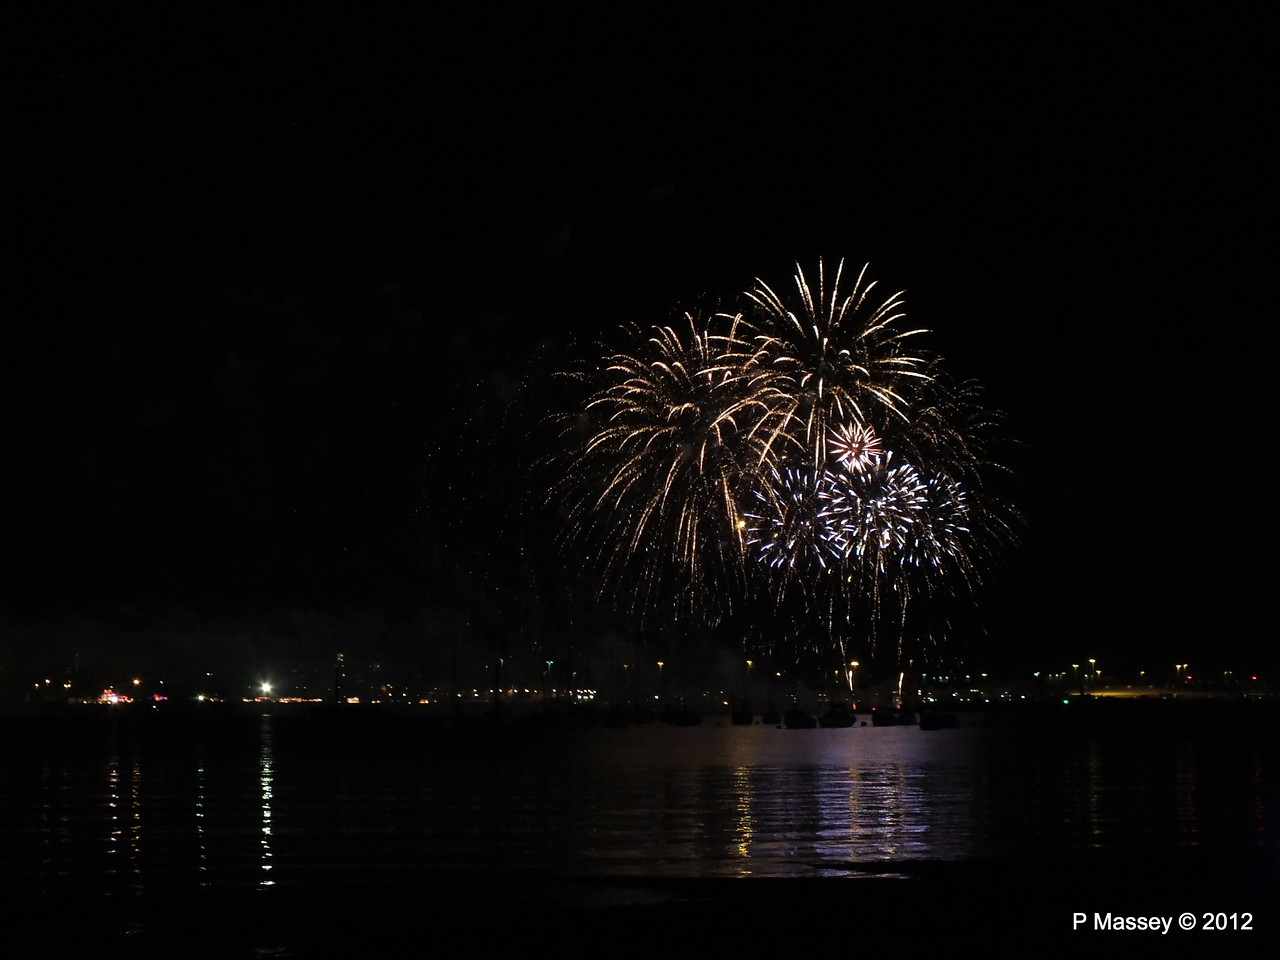 Fireworks off Mayflower Park PDM 03-11-2012 20-55-40